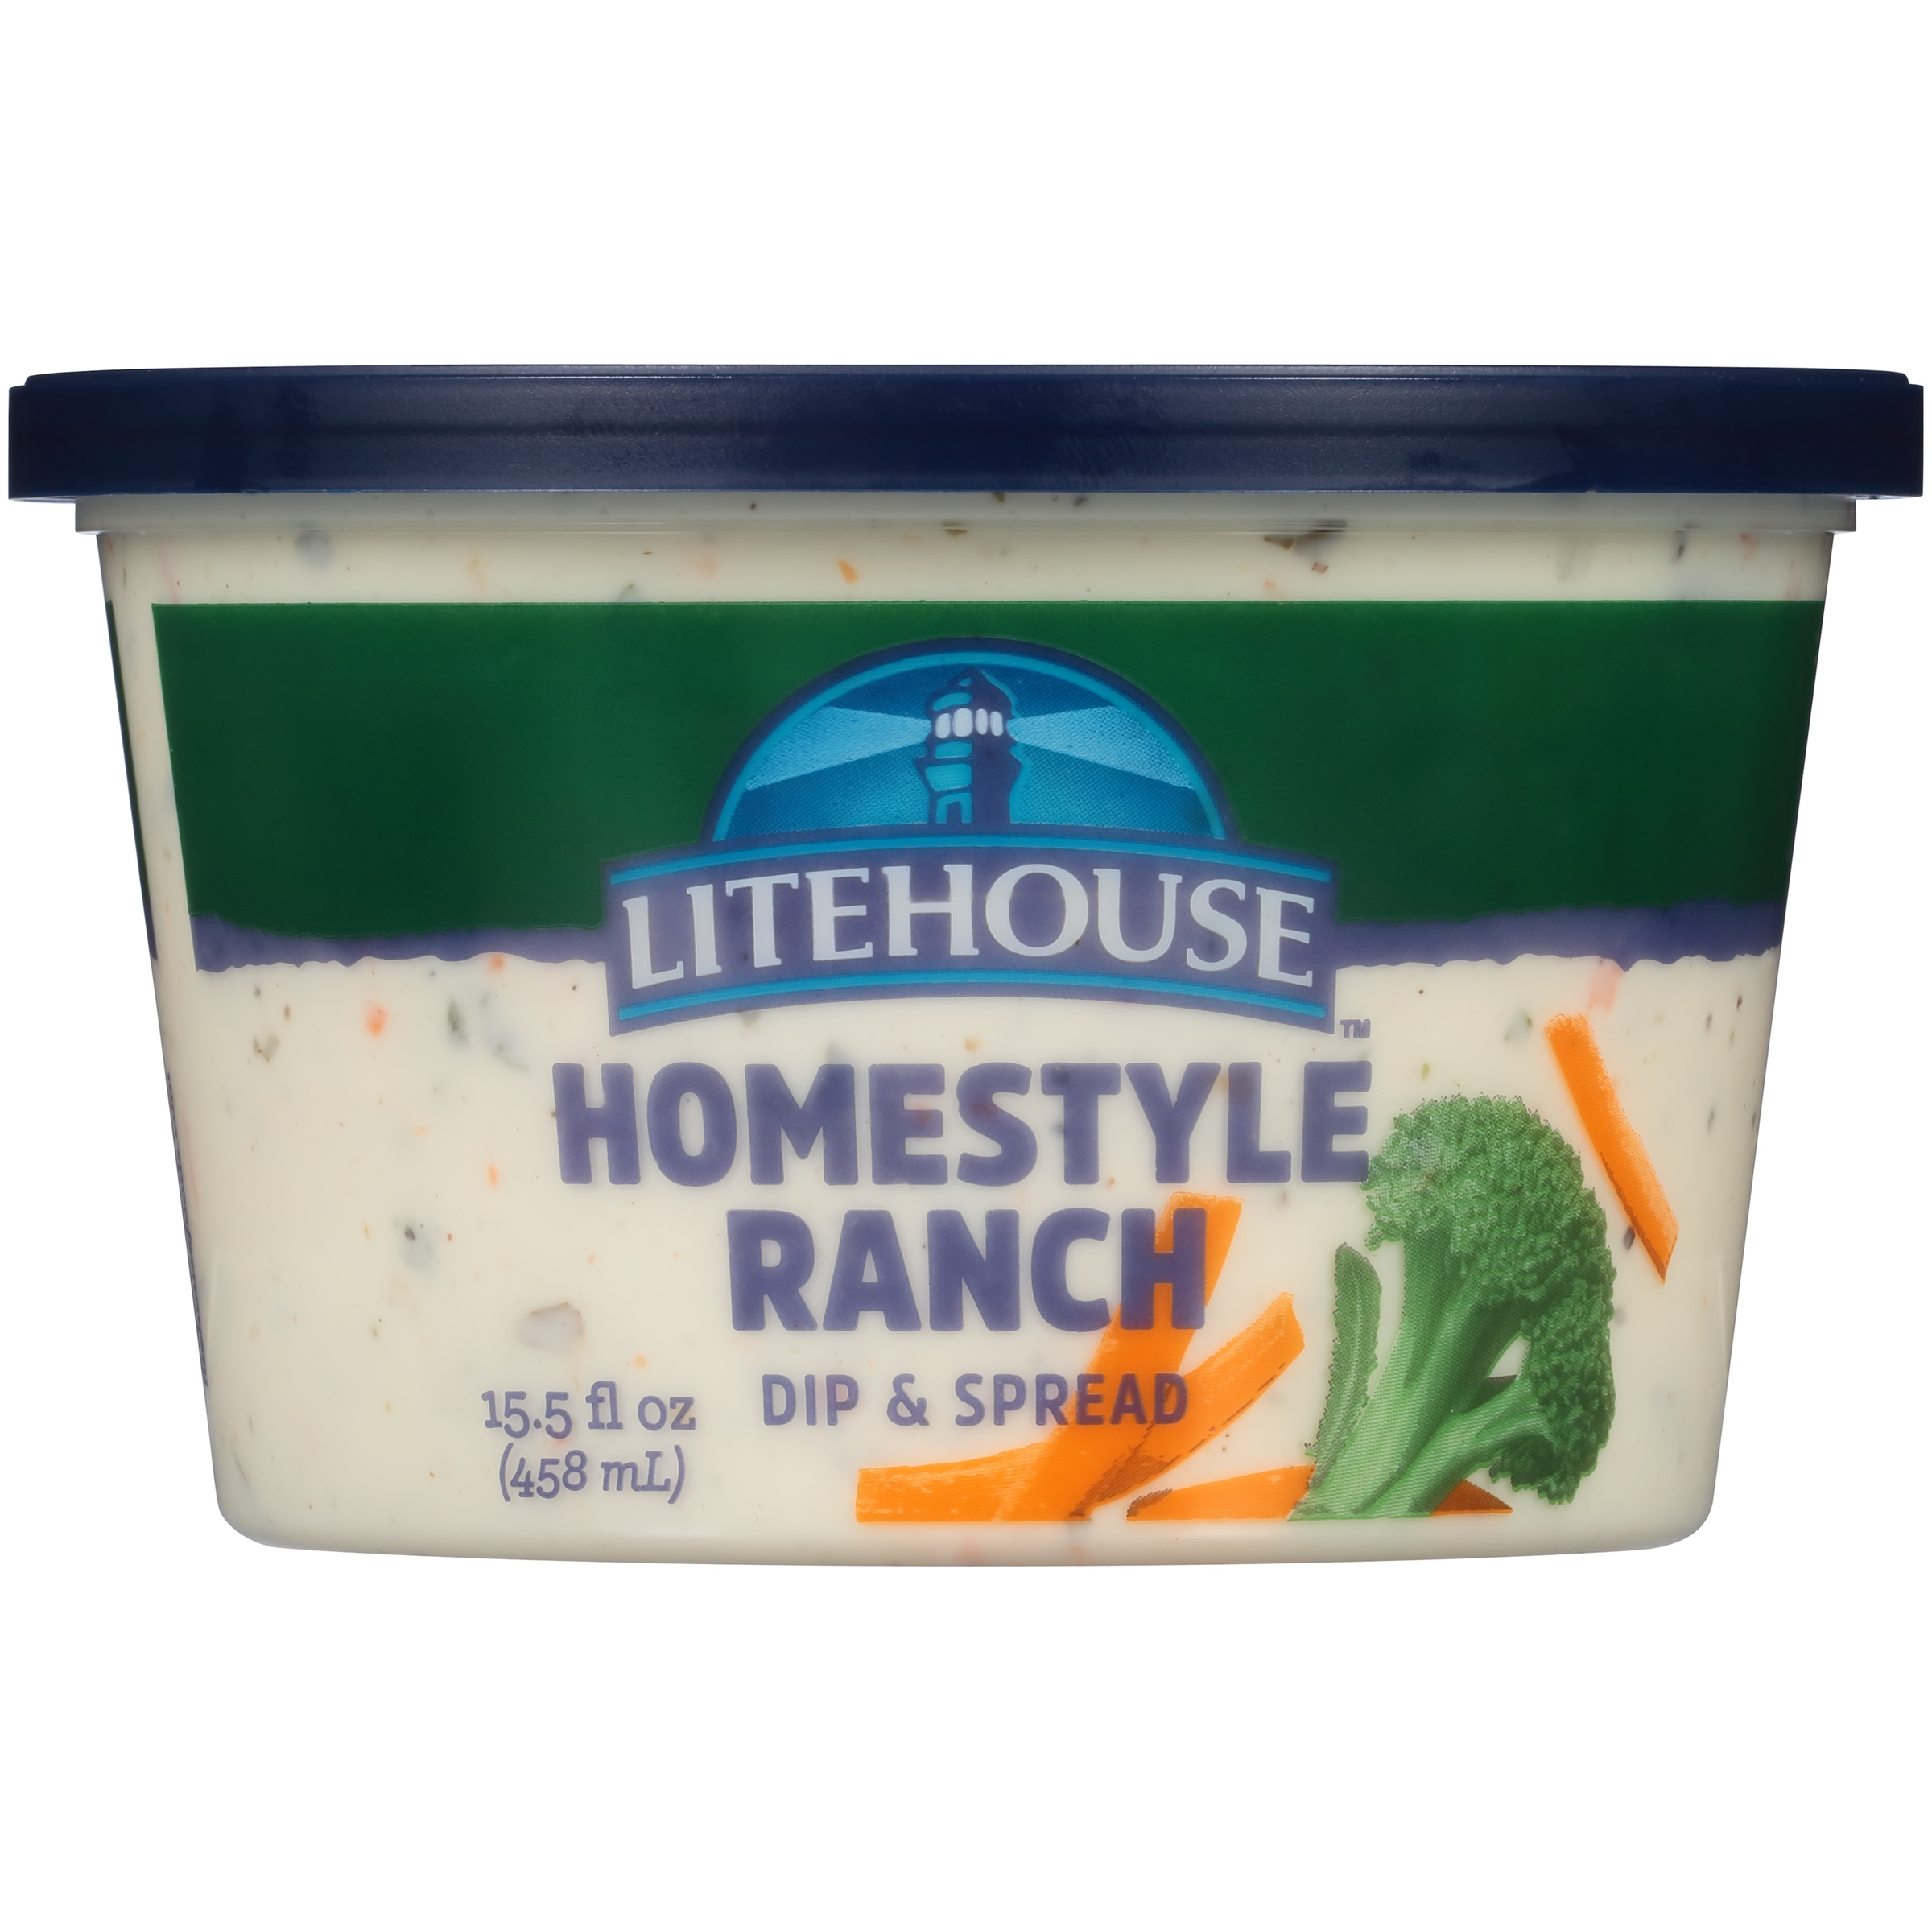 Litehouse Homestyle Ranch Veggie Dip 15.5 Fl Oz Tub